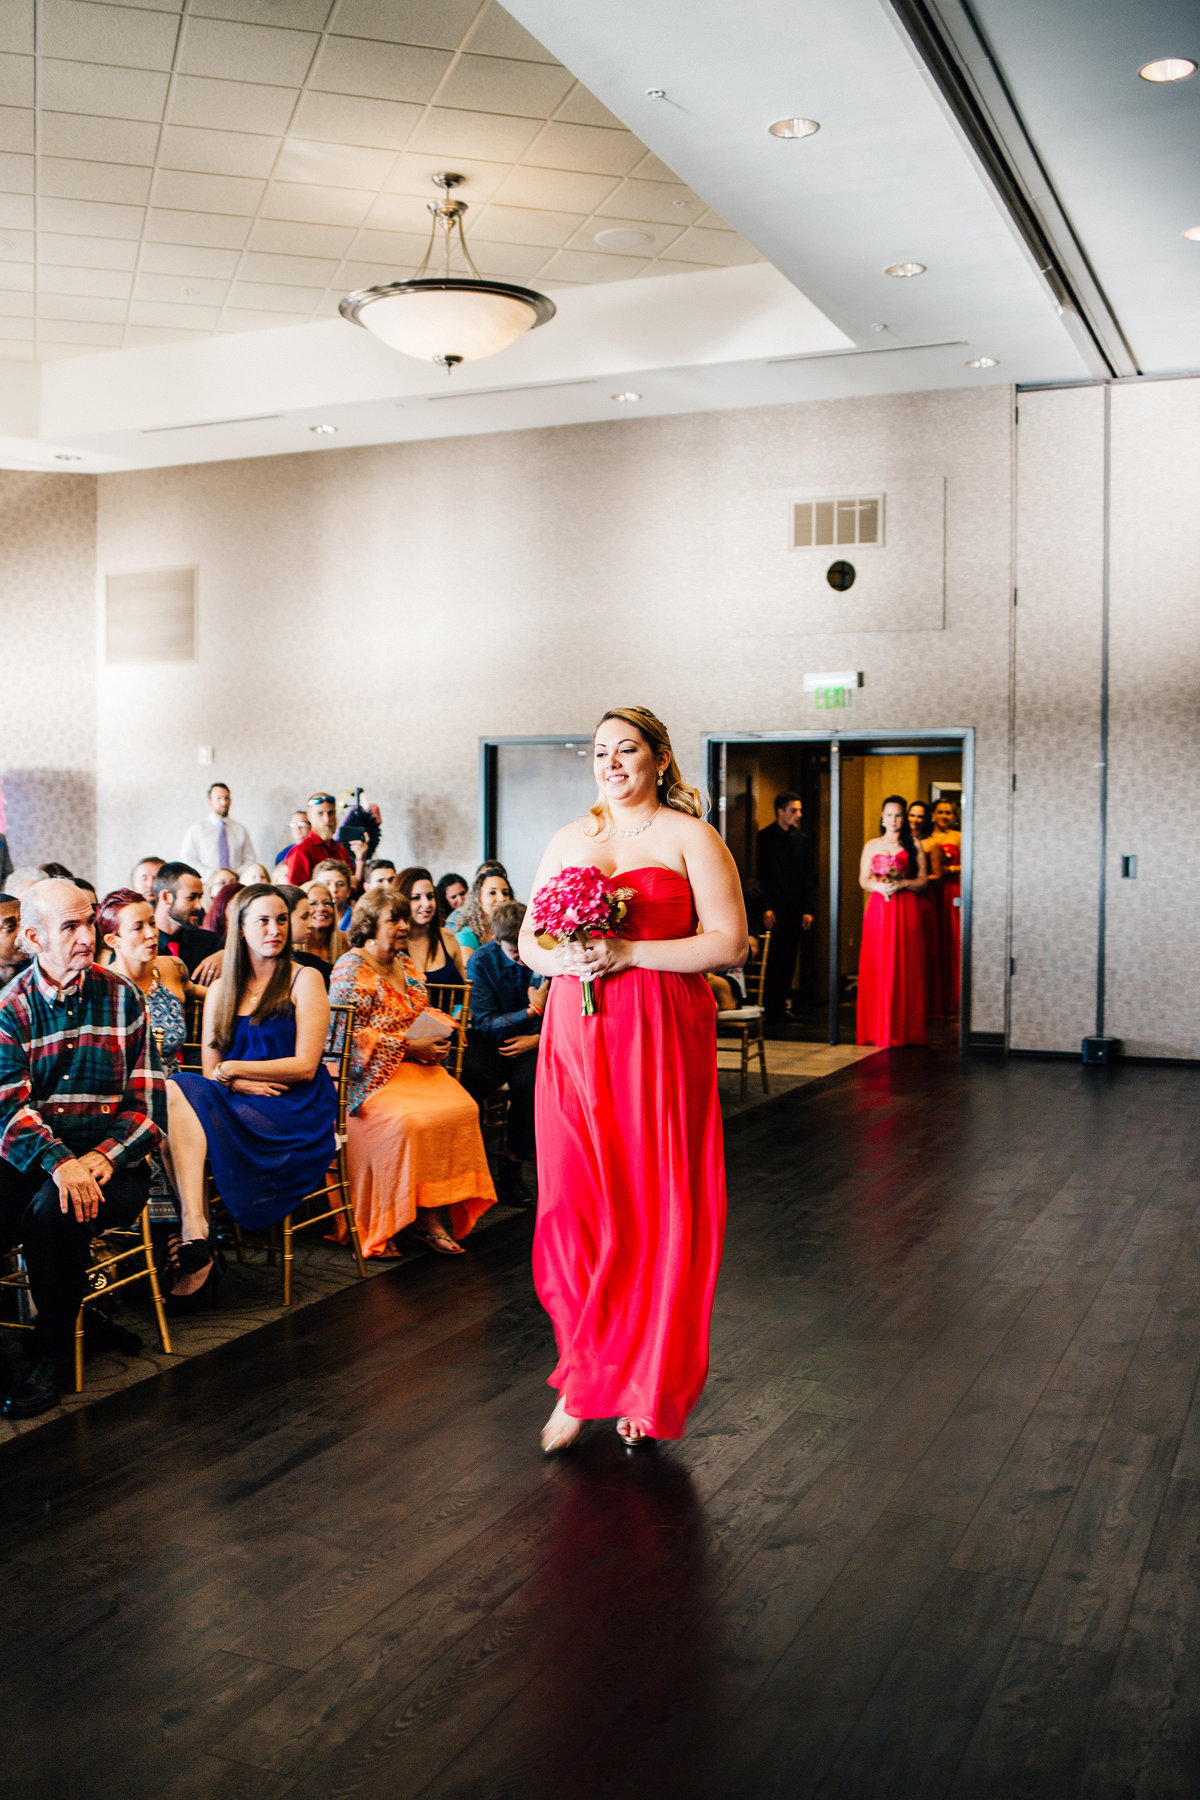 Kimberly_Hoyle_Photography_Milam_The_Back_Center_Melbourne_Wedding-23